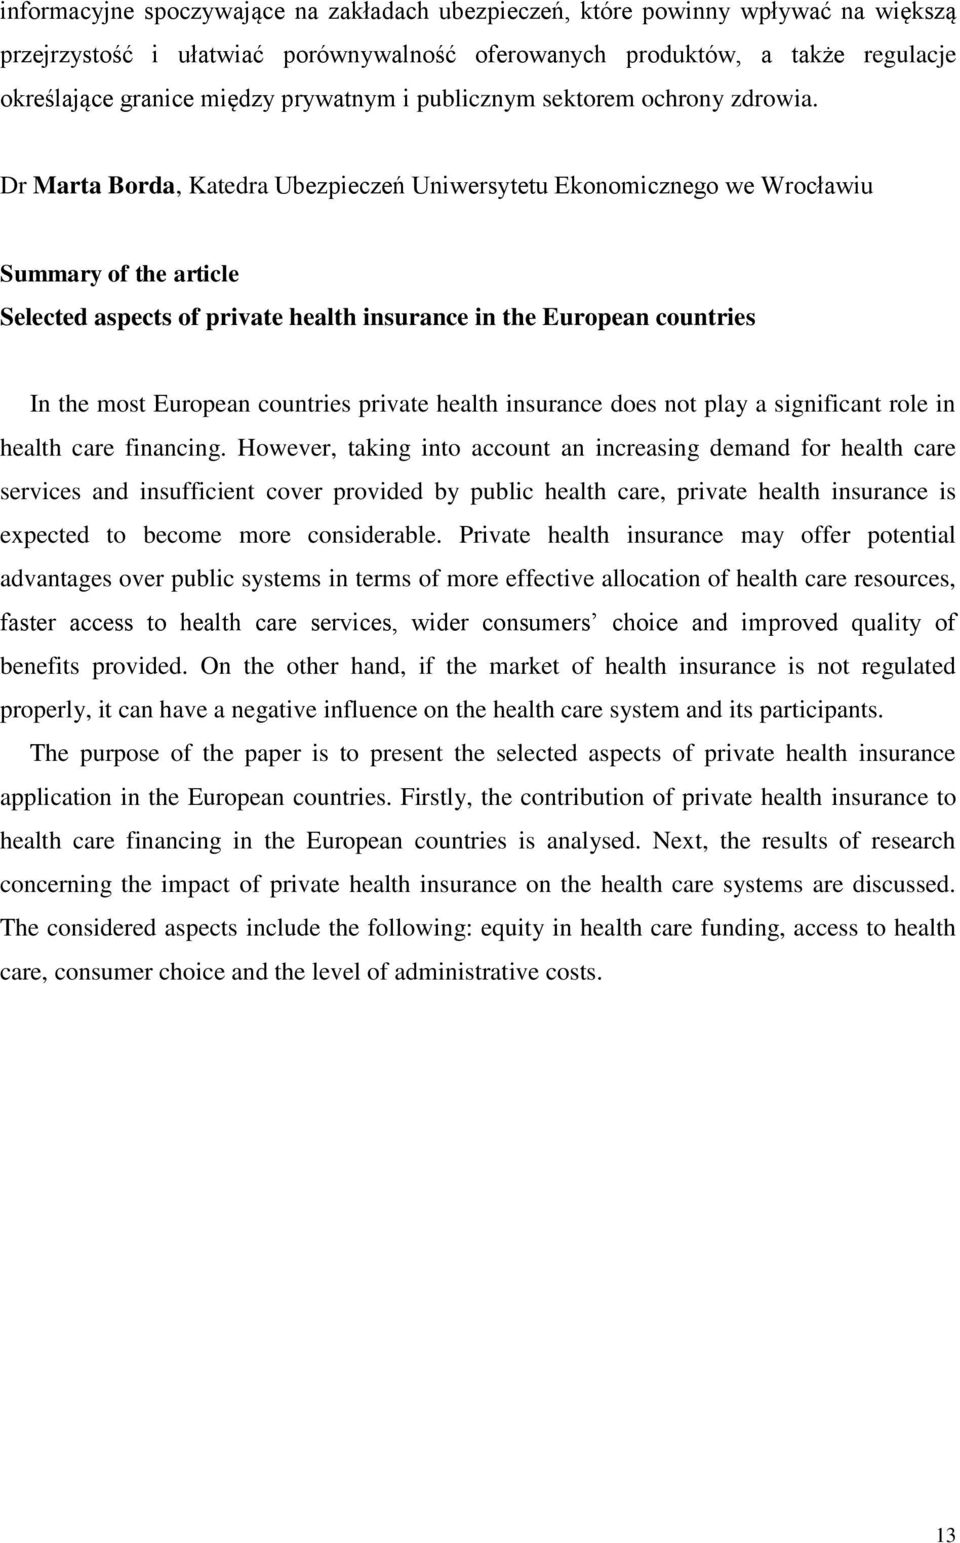 Dr Marta Borda, Katedra Ubezpieczeń Uniwersytetu Ekonomicznego we Wrocławiu Summary of the article Selected aspects of private health insurance in the European countries In the most European